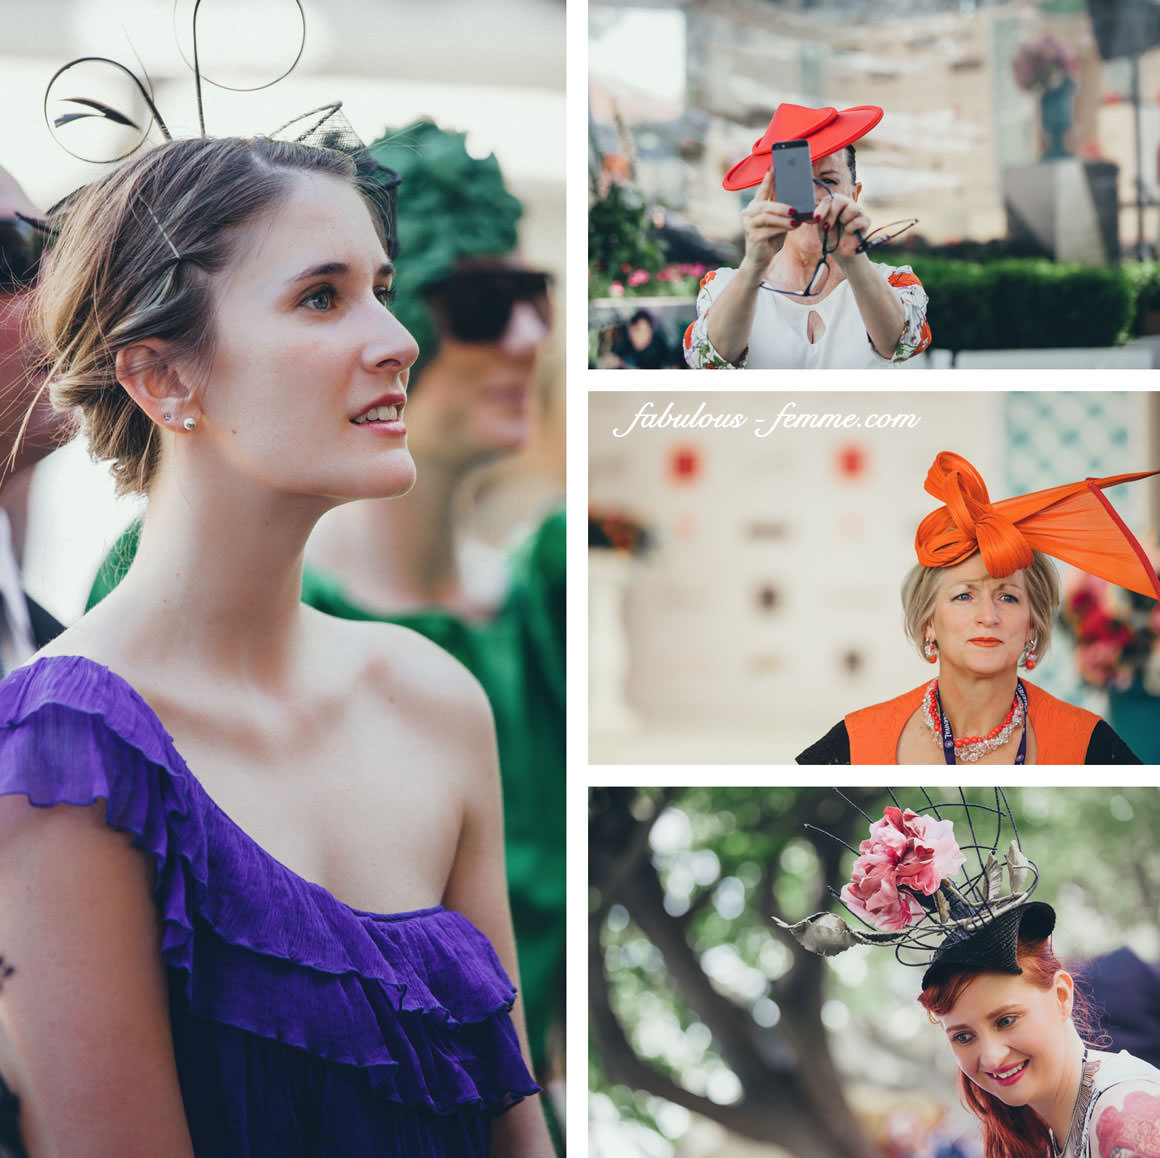 events in melbourne - spring racing carnival - trends